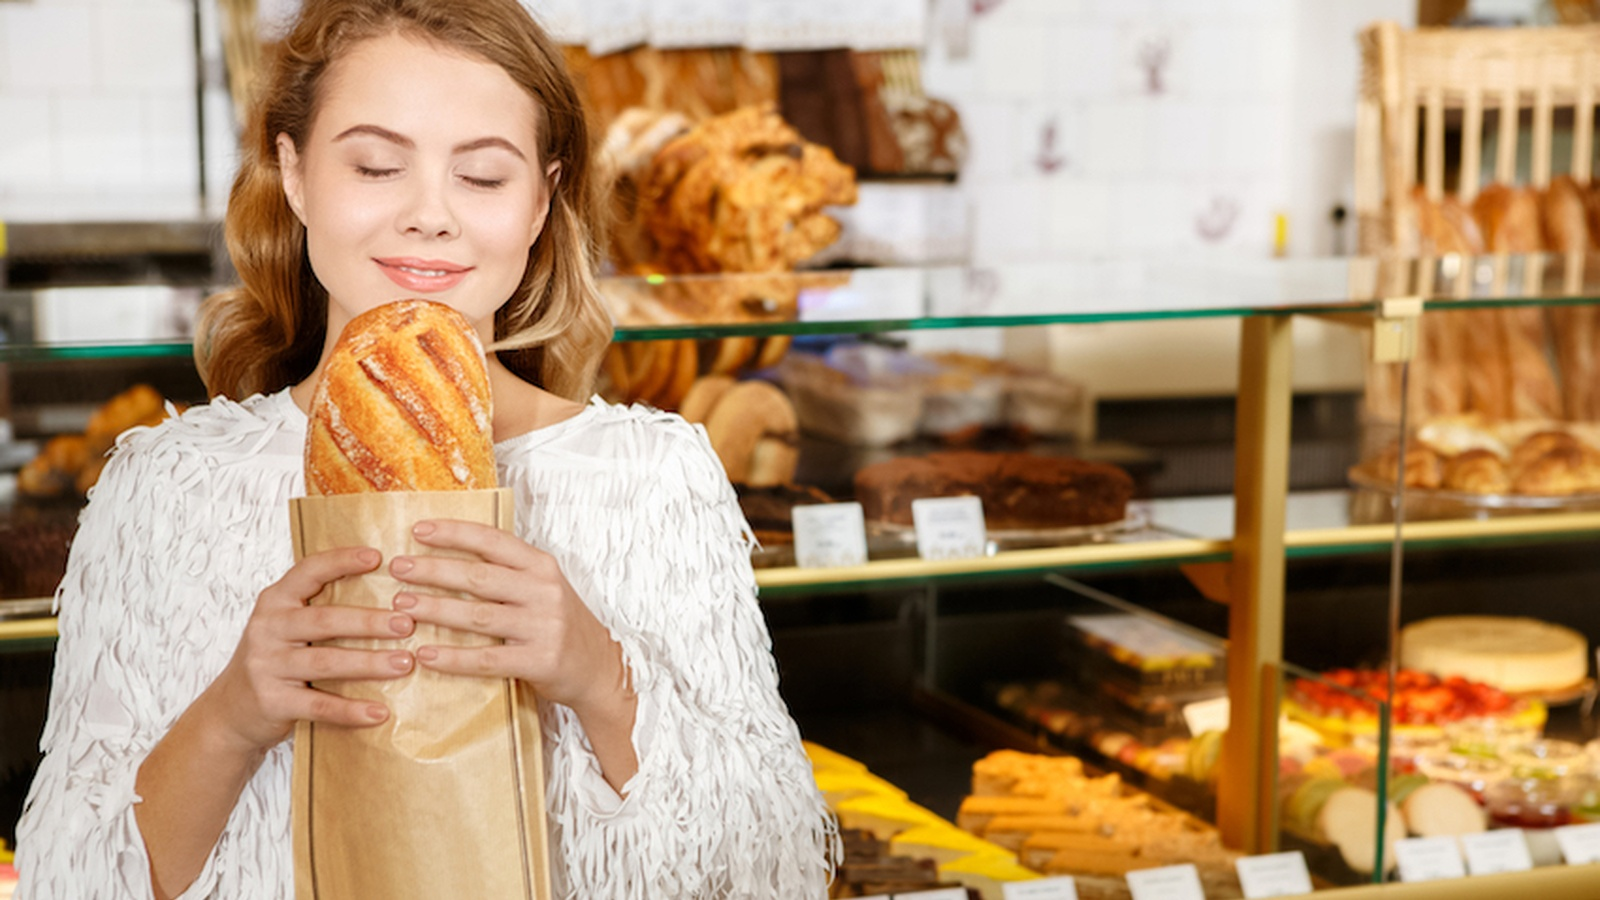 6 Tips To Buying Healthy Bread